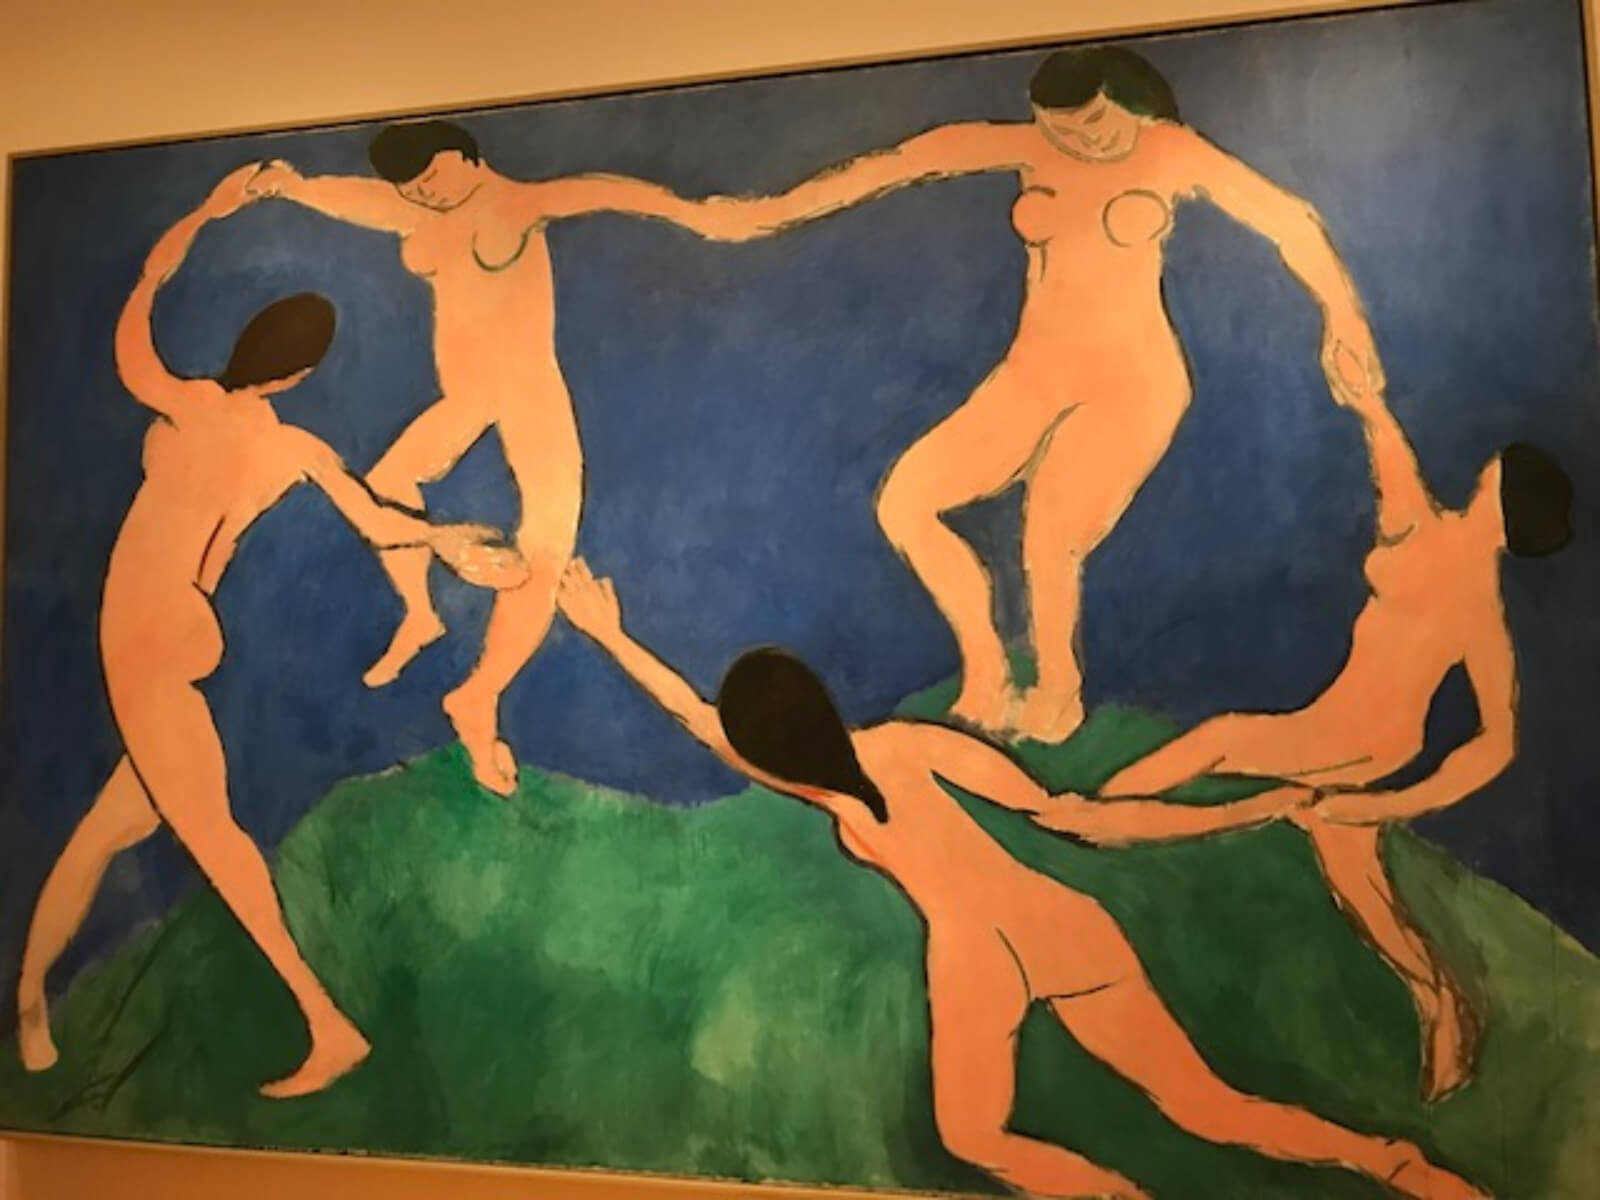 """The real Matisse painting titled """"La Danse"""" that inspired creative aspects for The Beast in the Jungle."""